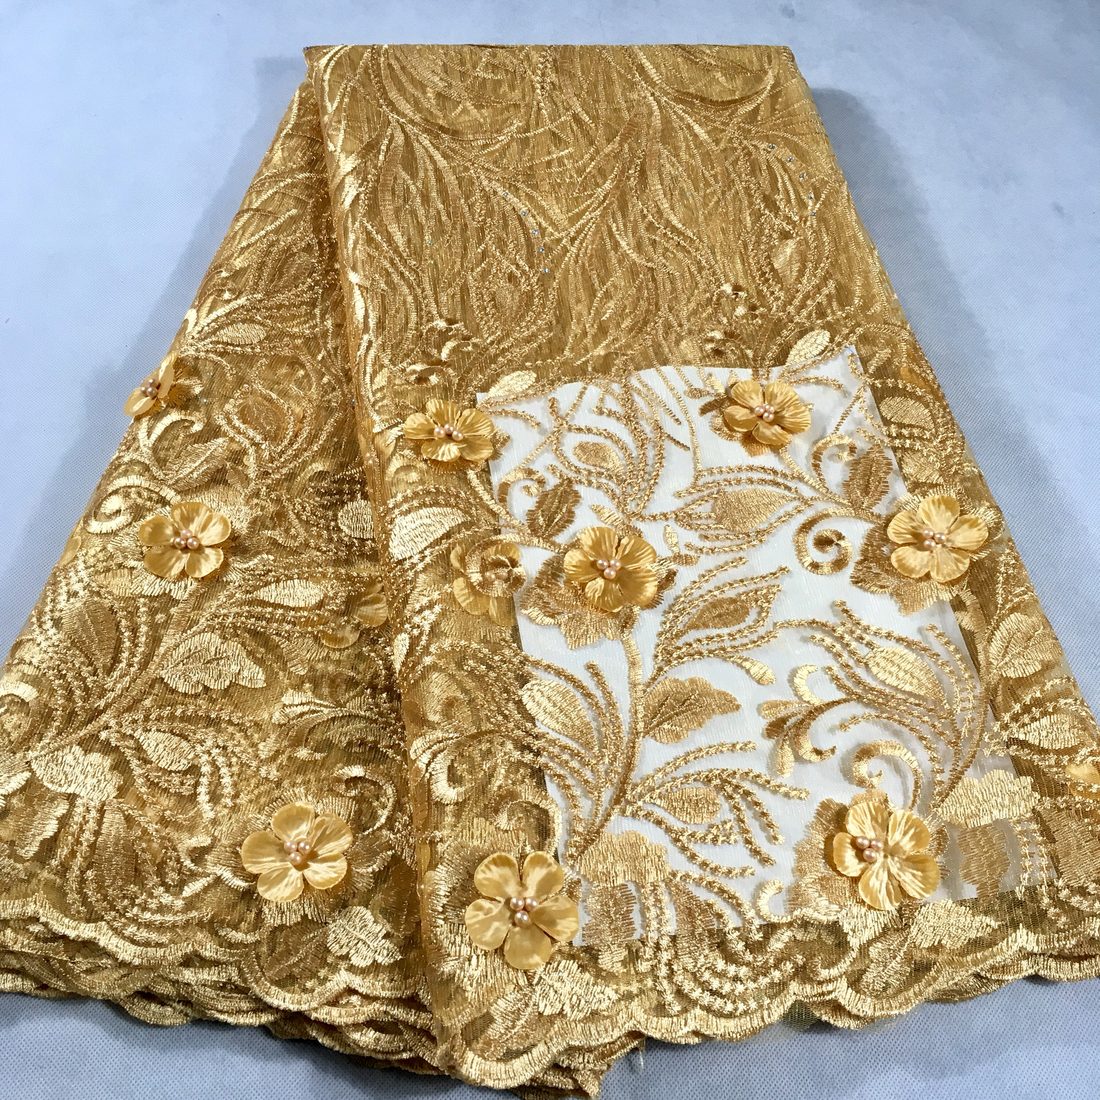 Gold African Lace Fabric 2019 Embroidered Nigerian Wedding Lace Fabric High Quality French Tulle Lace Fabric Beads Stones LHX11D